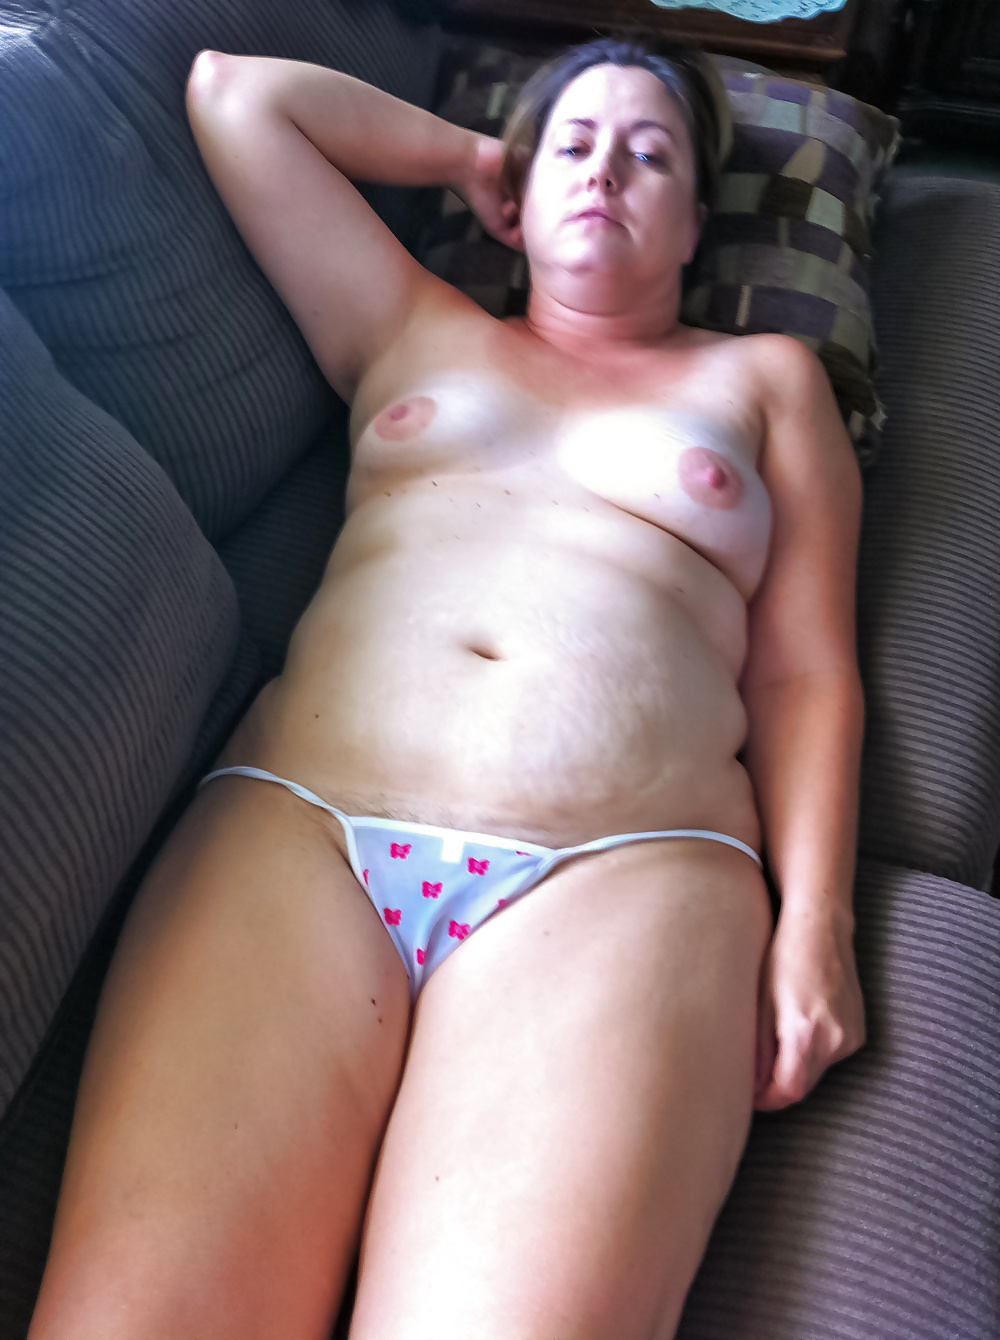 Chubby amateur panty, drunk coed party girls